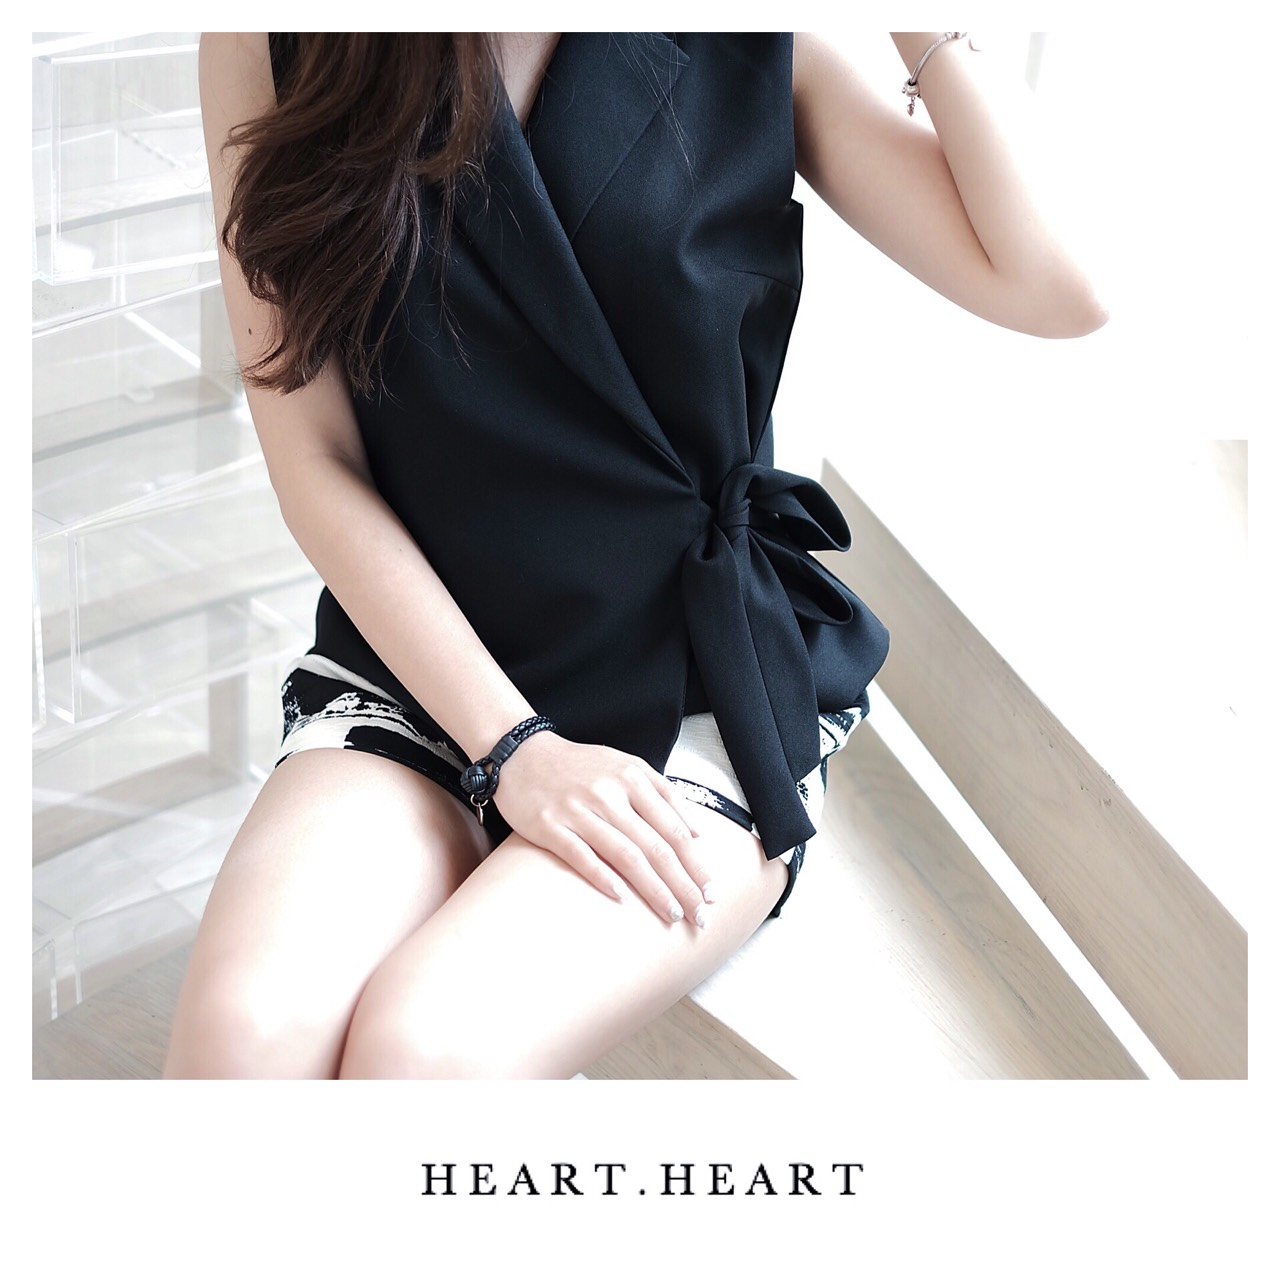 heartheart